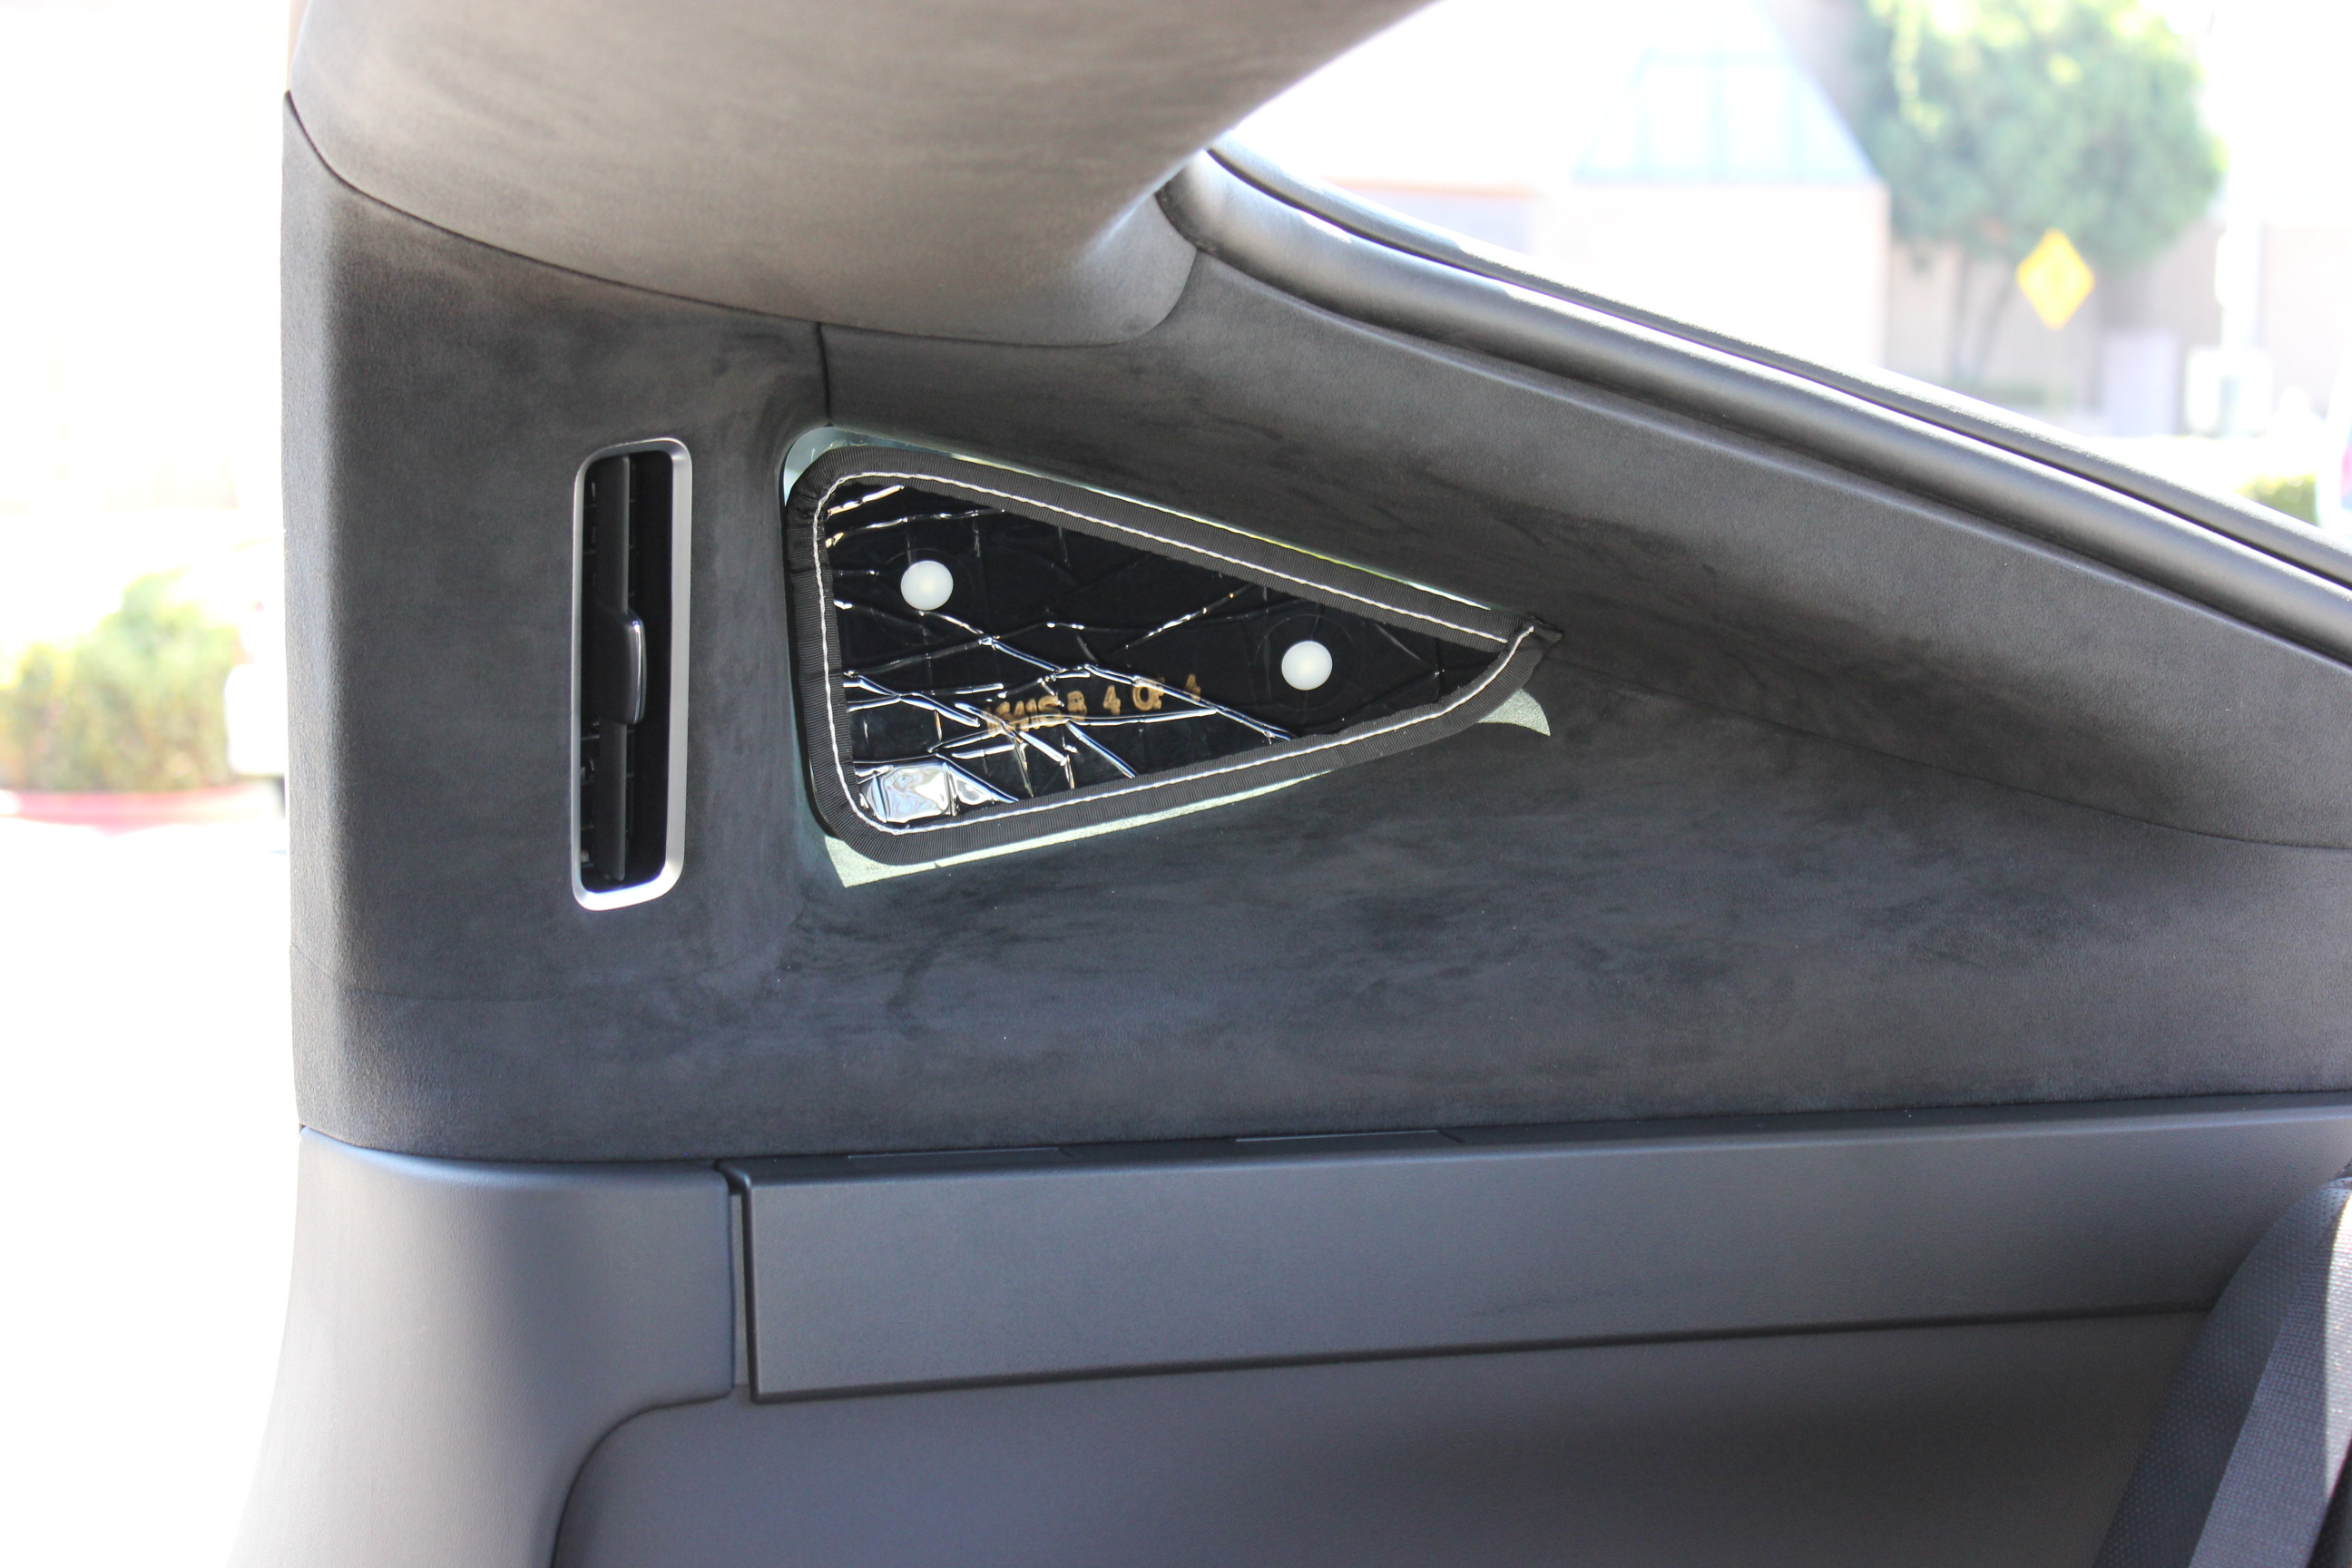 Model X 3rd row window